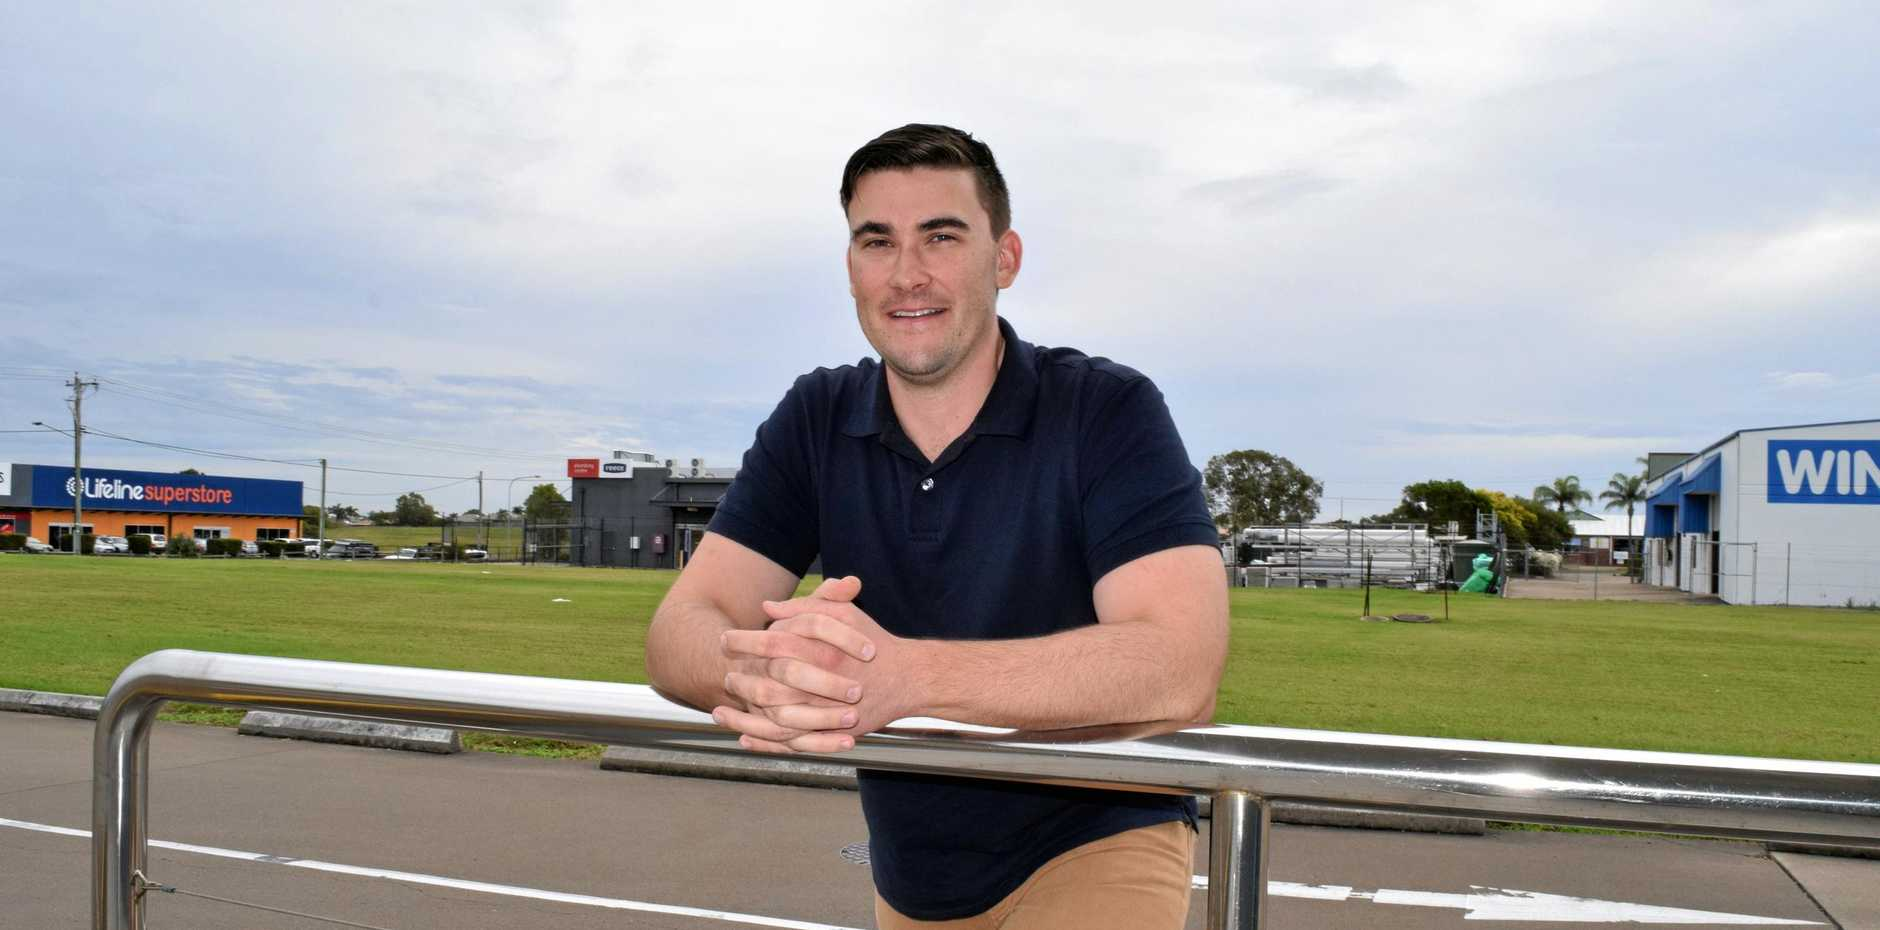 NEW CANDIDATE: Granville resident Lachlan Cosgrove has entered the race to become Division 10's new councillor.